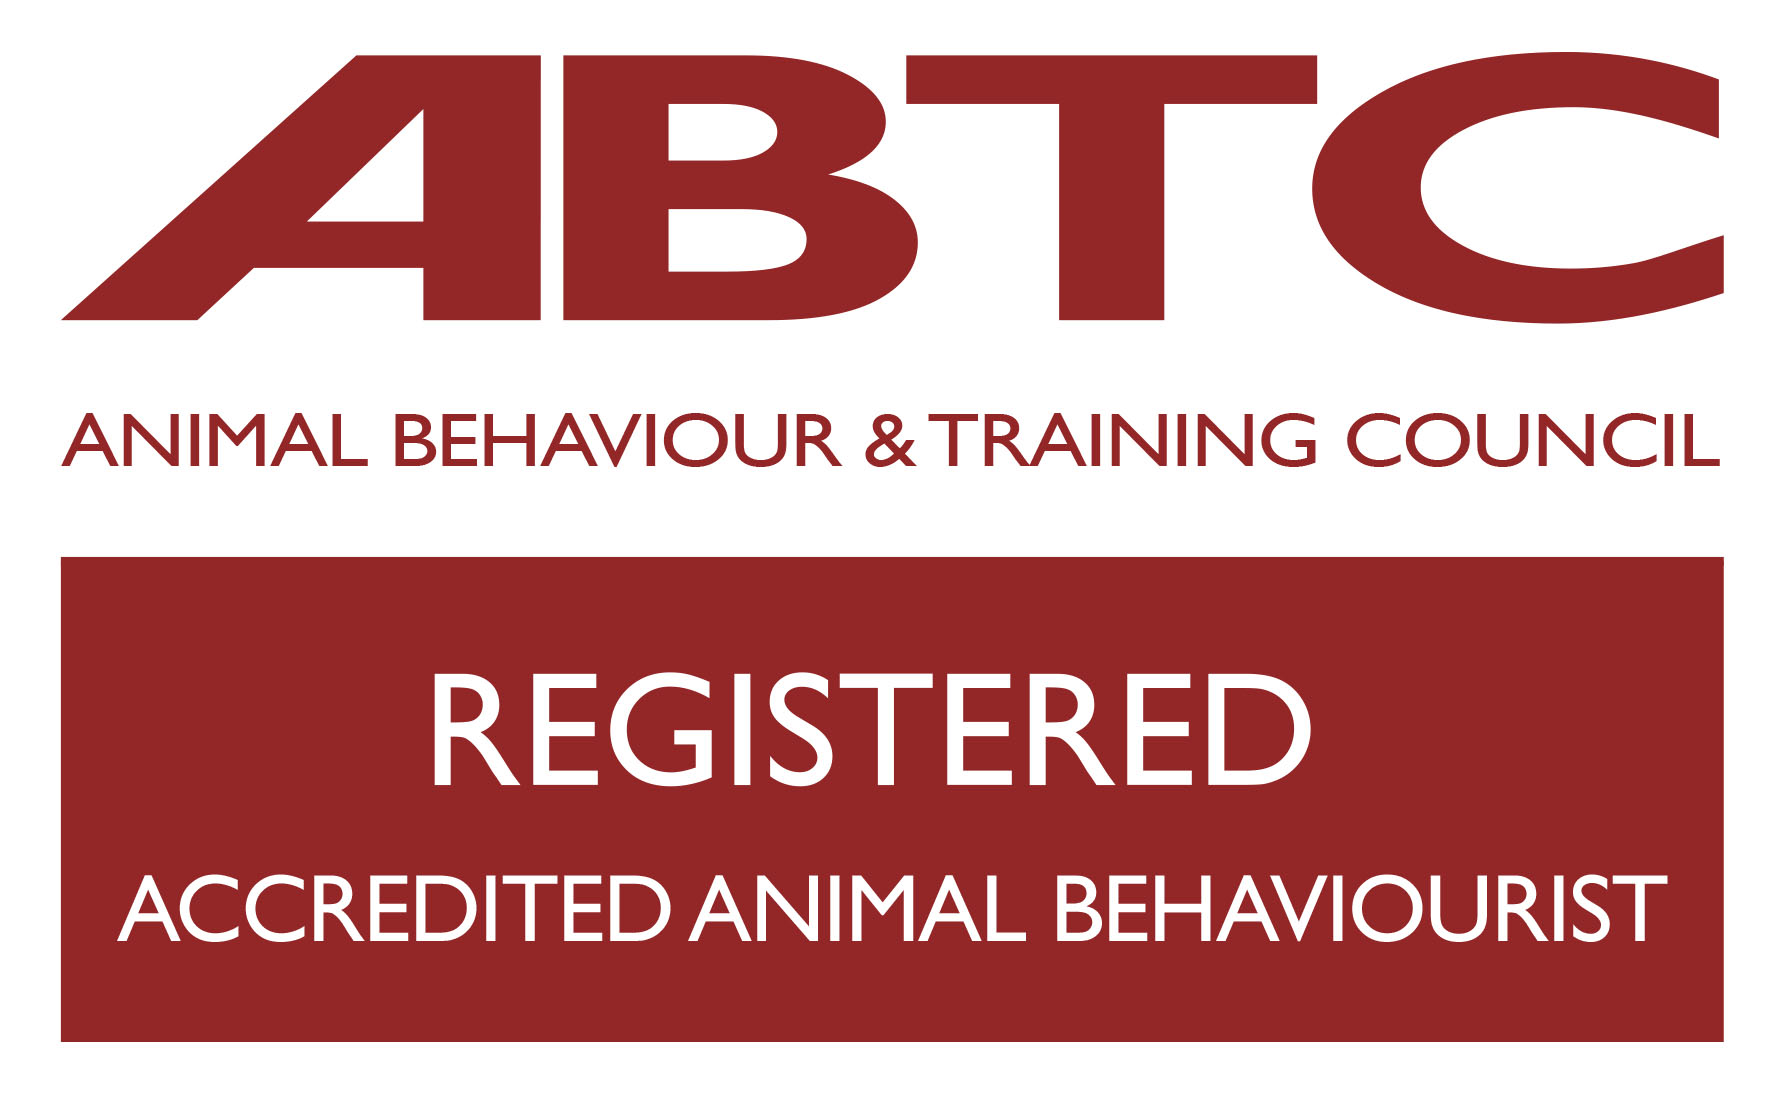 Registered Animal Behaviourist